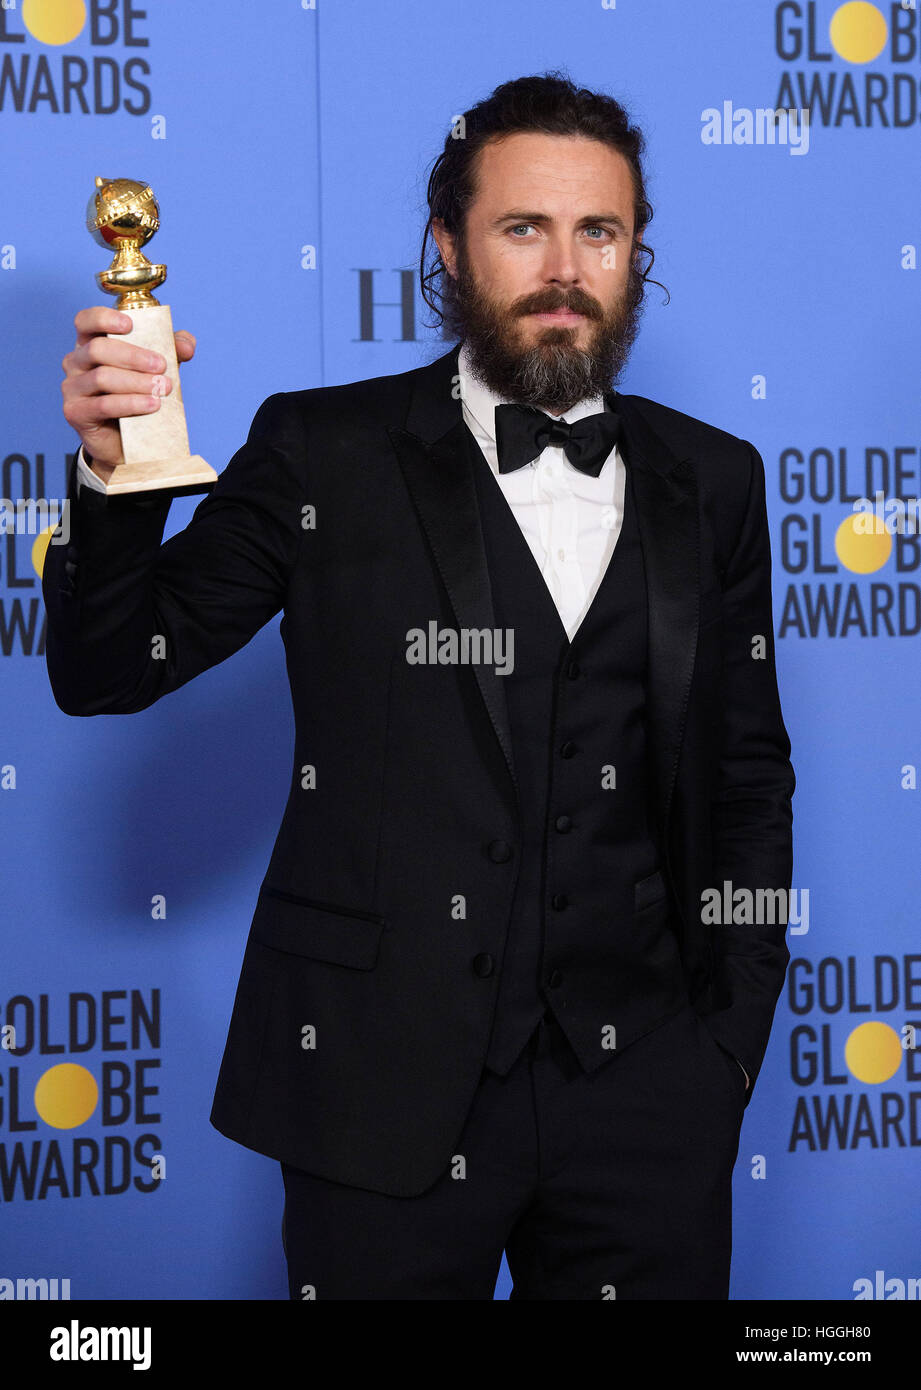 Beverly Hills, CA, USA. 8th Jan, 2017. Casey Affleck. 74th Annual Golden Globes Awards held at the Beverly Hilton - Stock Image